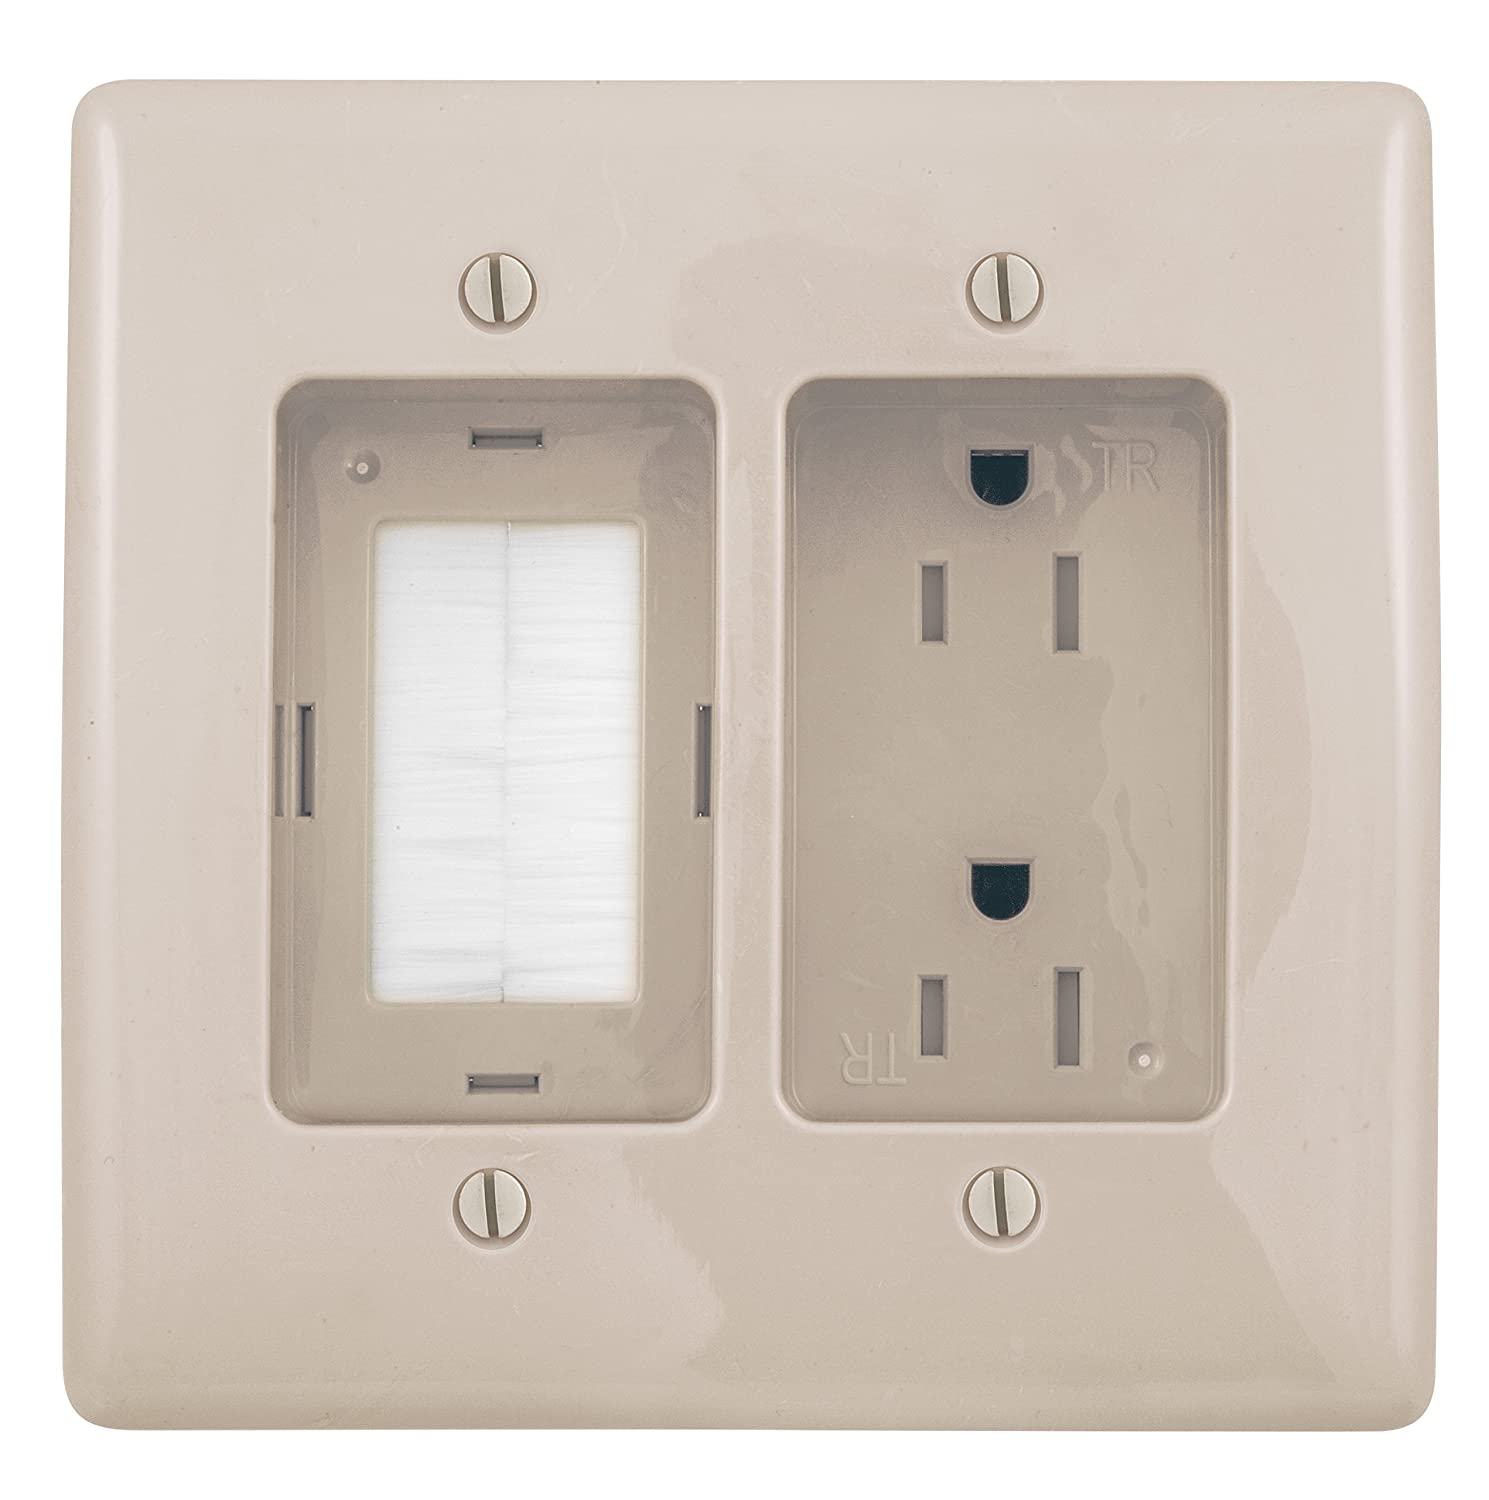 Bryant Electric RR1512LA 2-Gang Recessed TV Connection Outlet Plate with 15 Amp 125V T&er-Resistant Duplex Receptacle with One Pass-Thru Opening Light ...  sc 1 st  Amazon.com & Bryant Electric RR1512LA 2-Gang Recessed TV Connection Outlet Plate ...